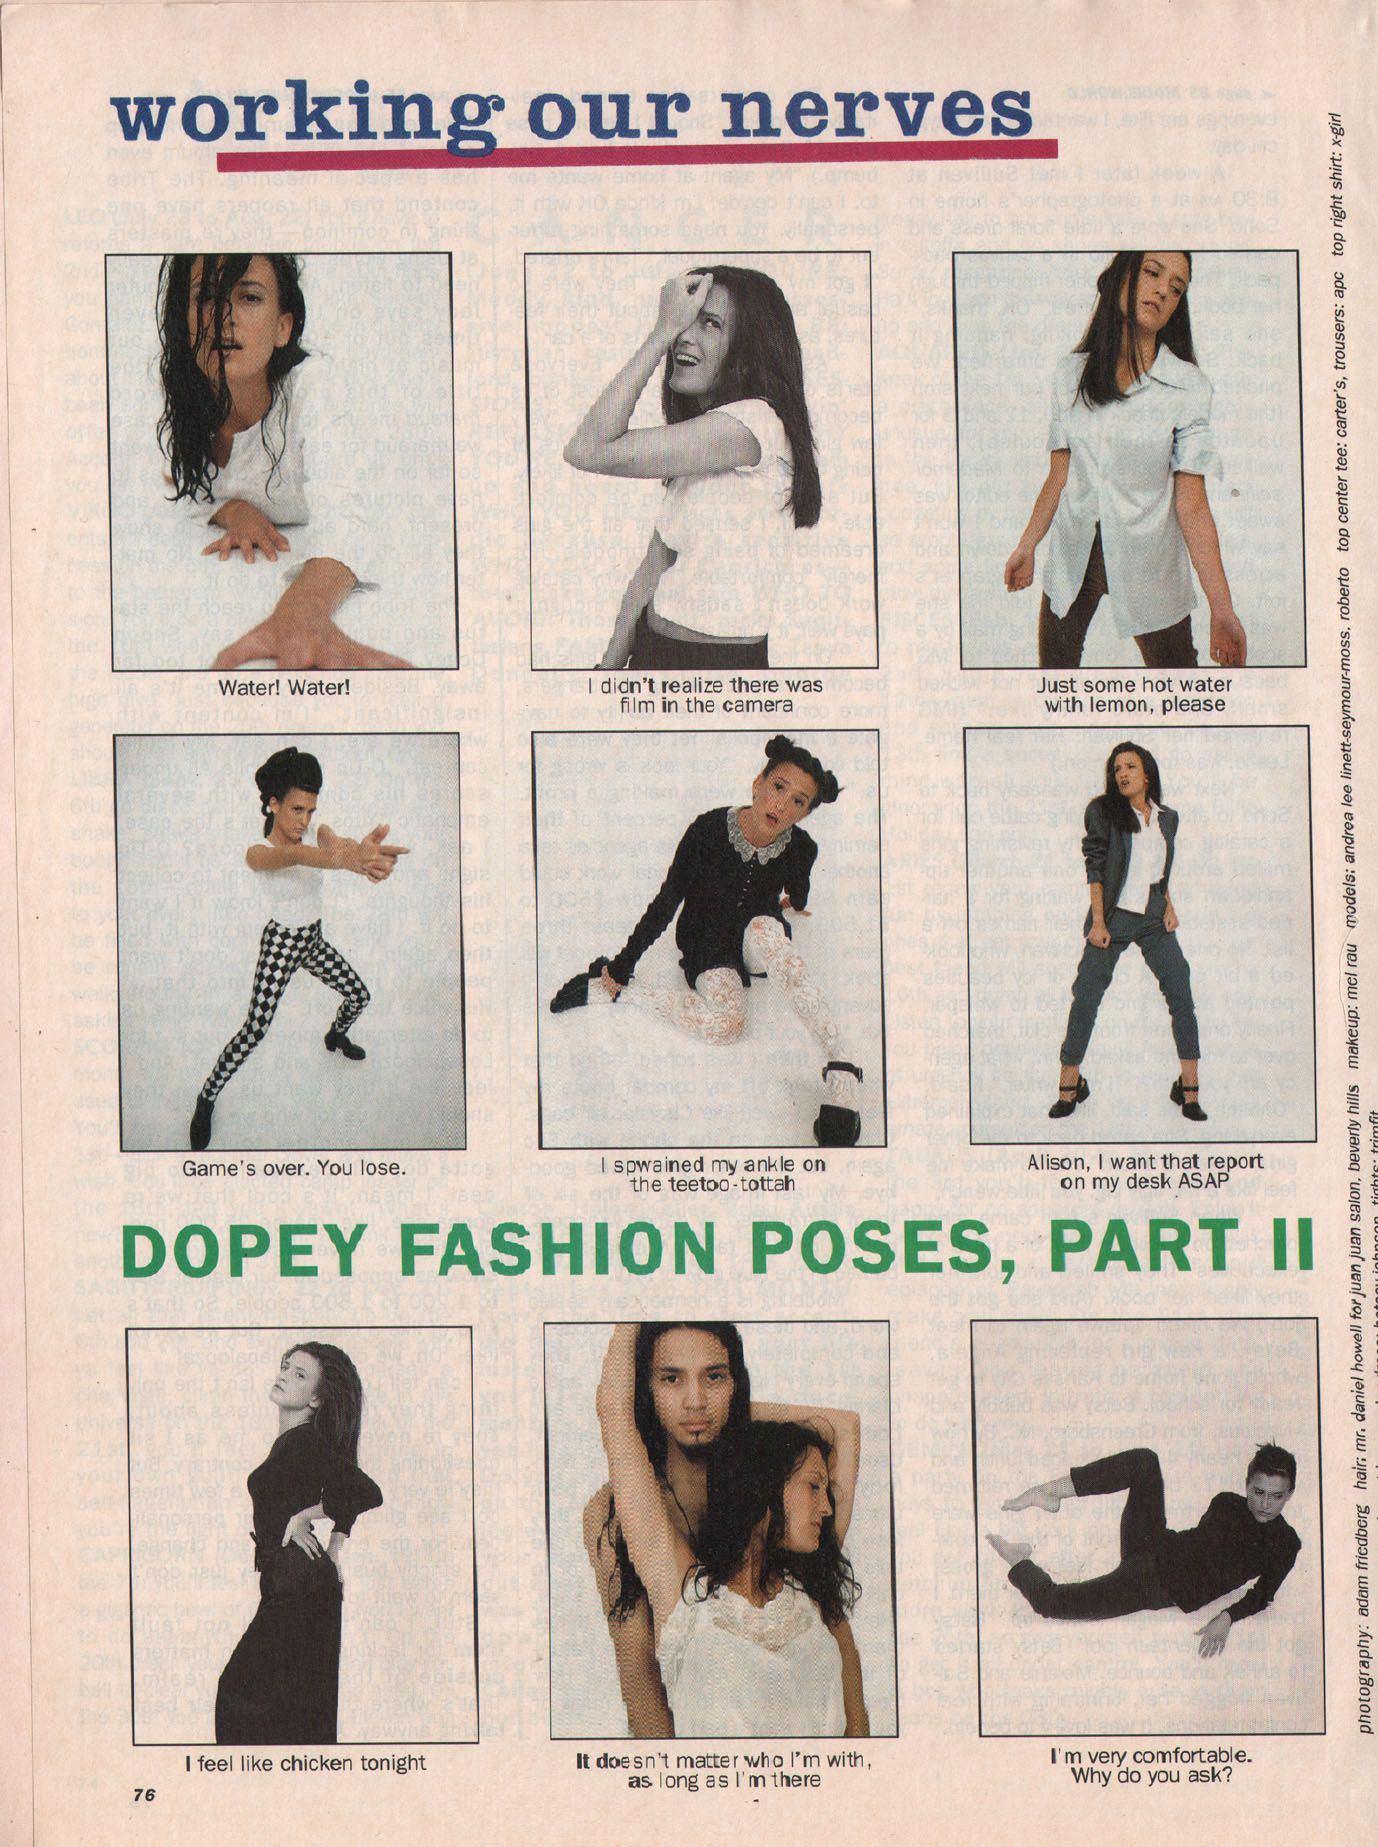 Sassy July 1994 Working Our Nerves Dopey Fashion Poses Part Ii Fashion Poses Poses Photoshoot Poses